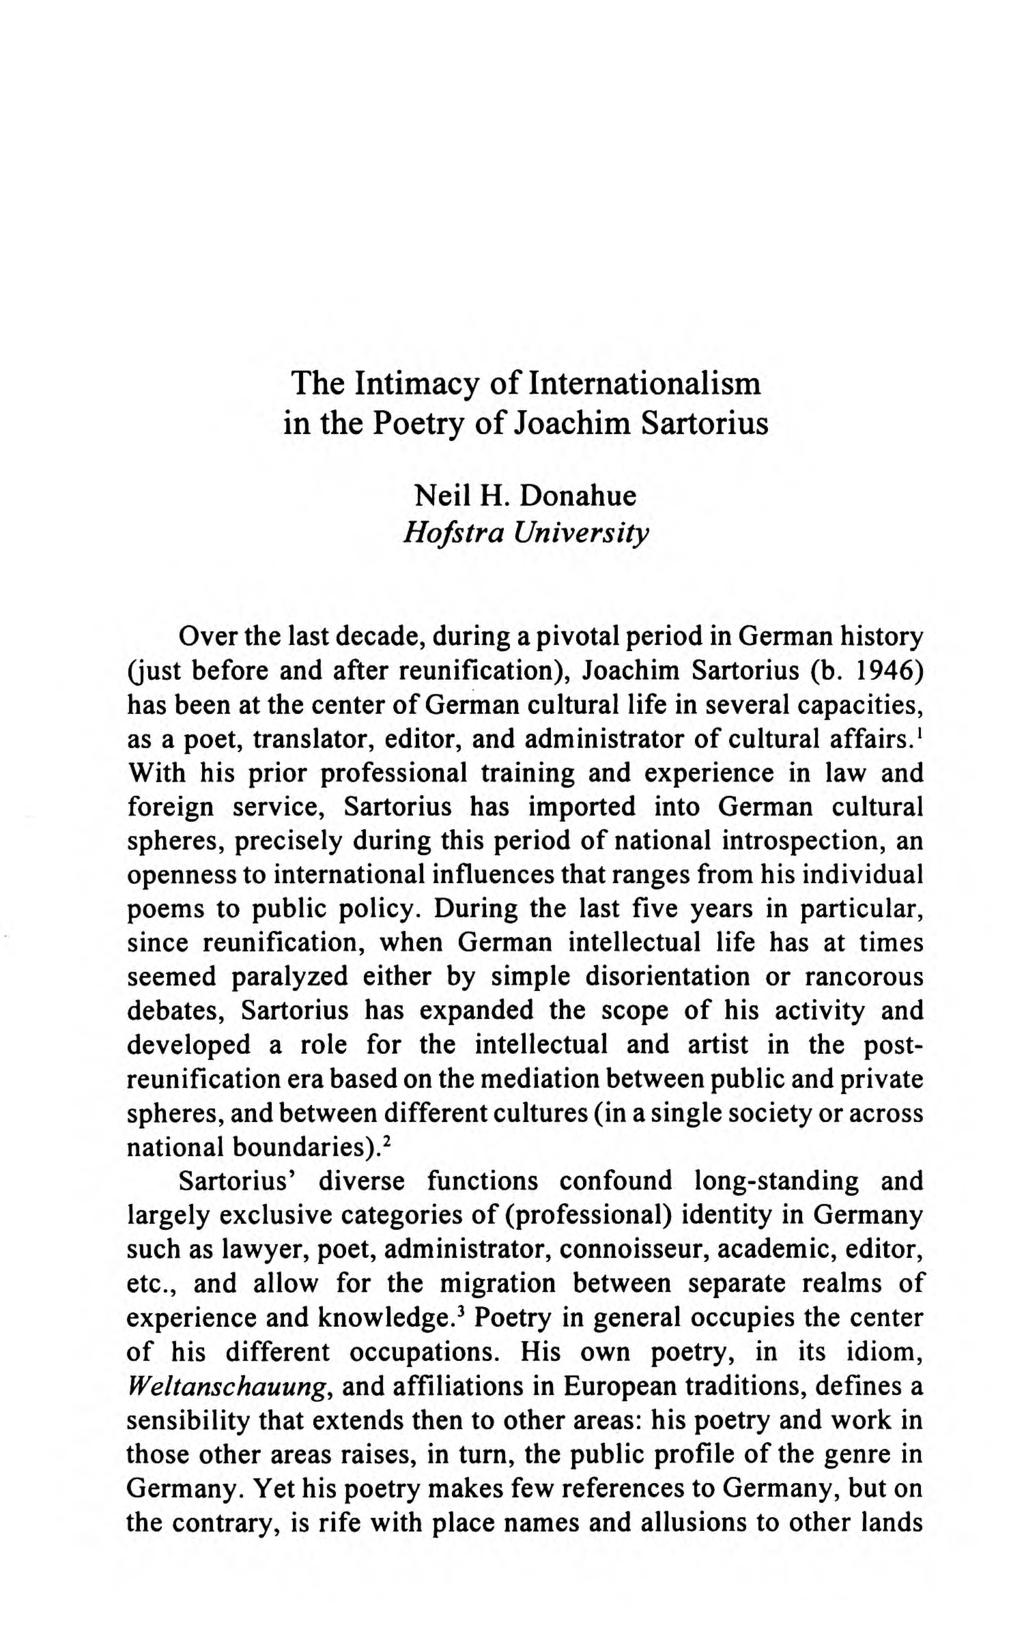 The Intimacy Of Internationalism In The Poetry Of Joachim